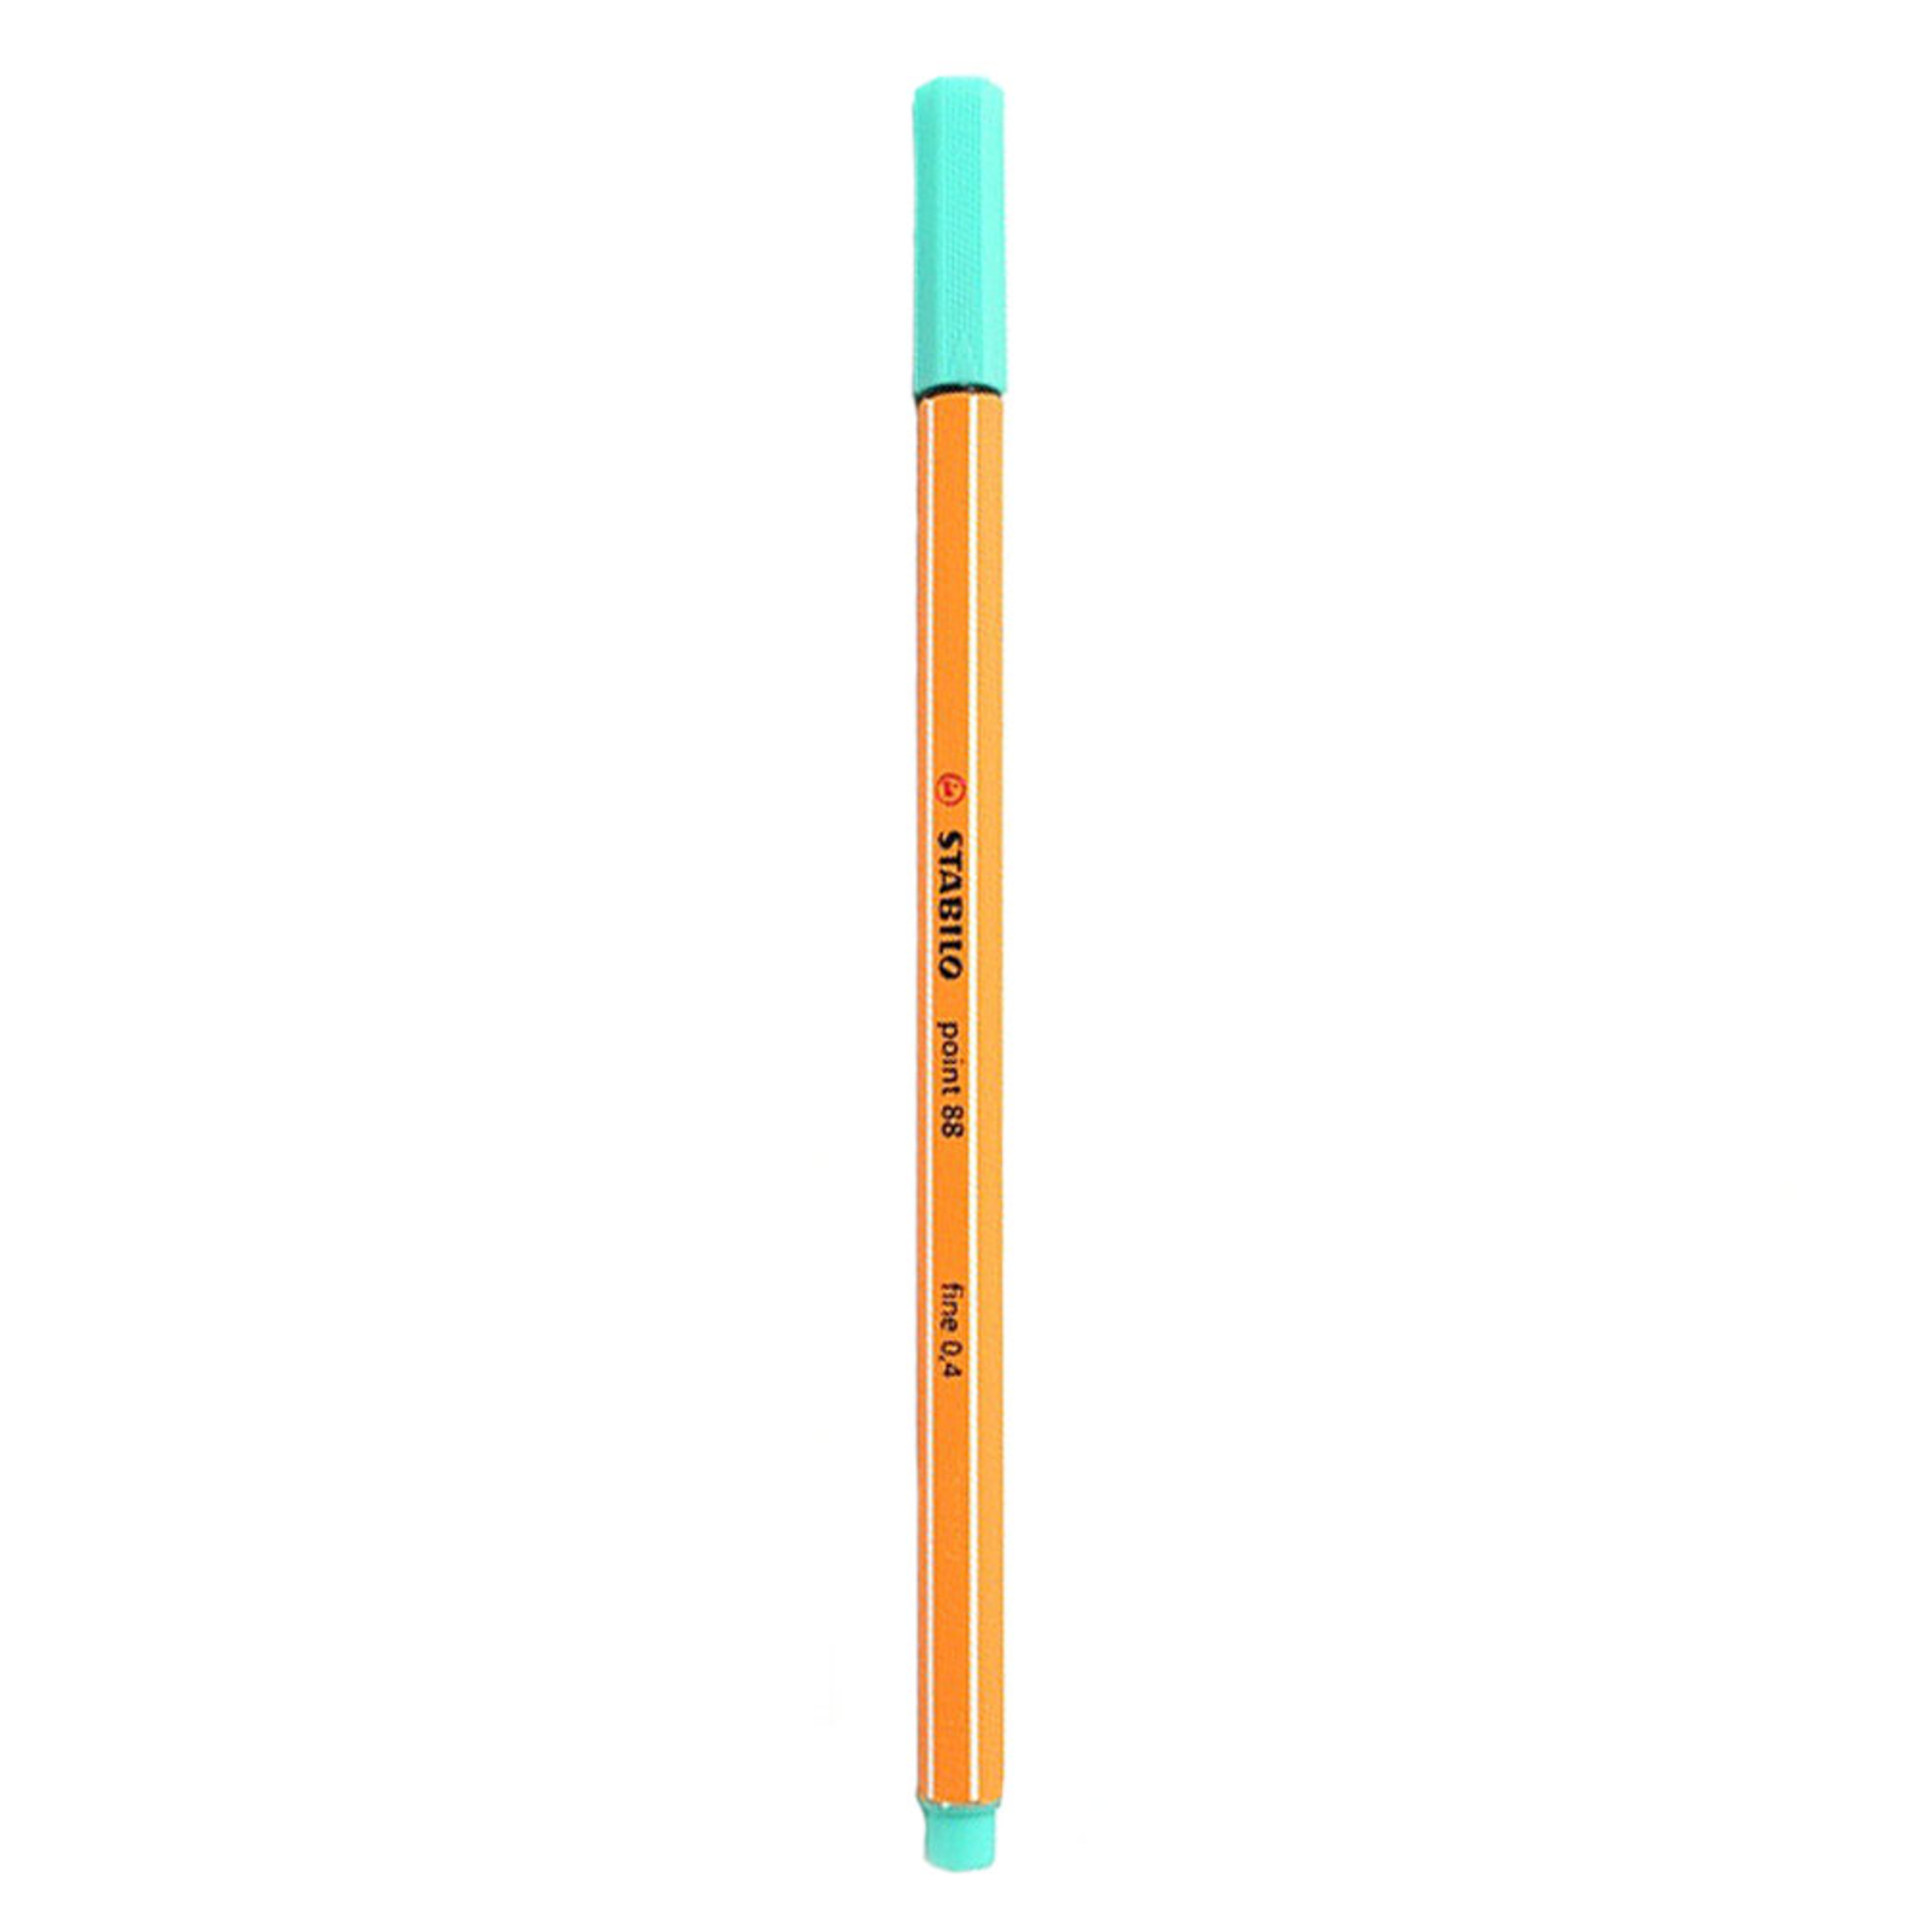 Stabilo Point 88 .4mm Fineliner Pen – Ice Green